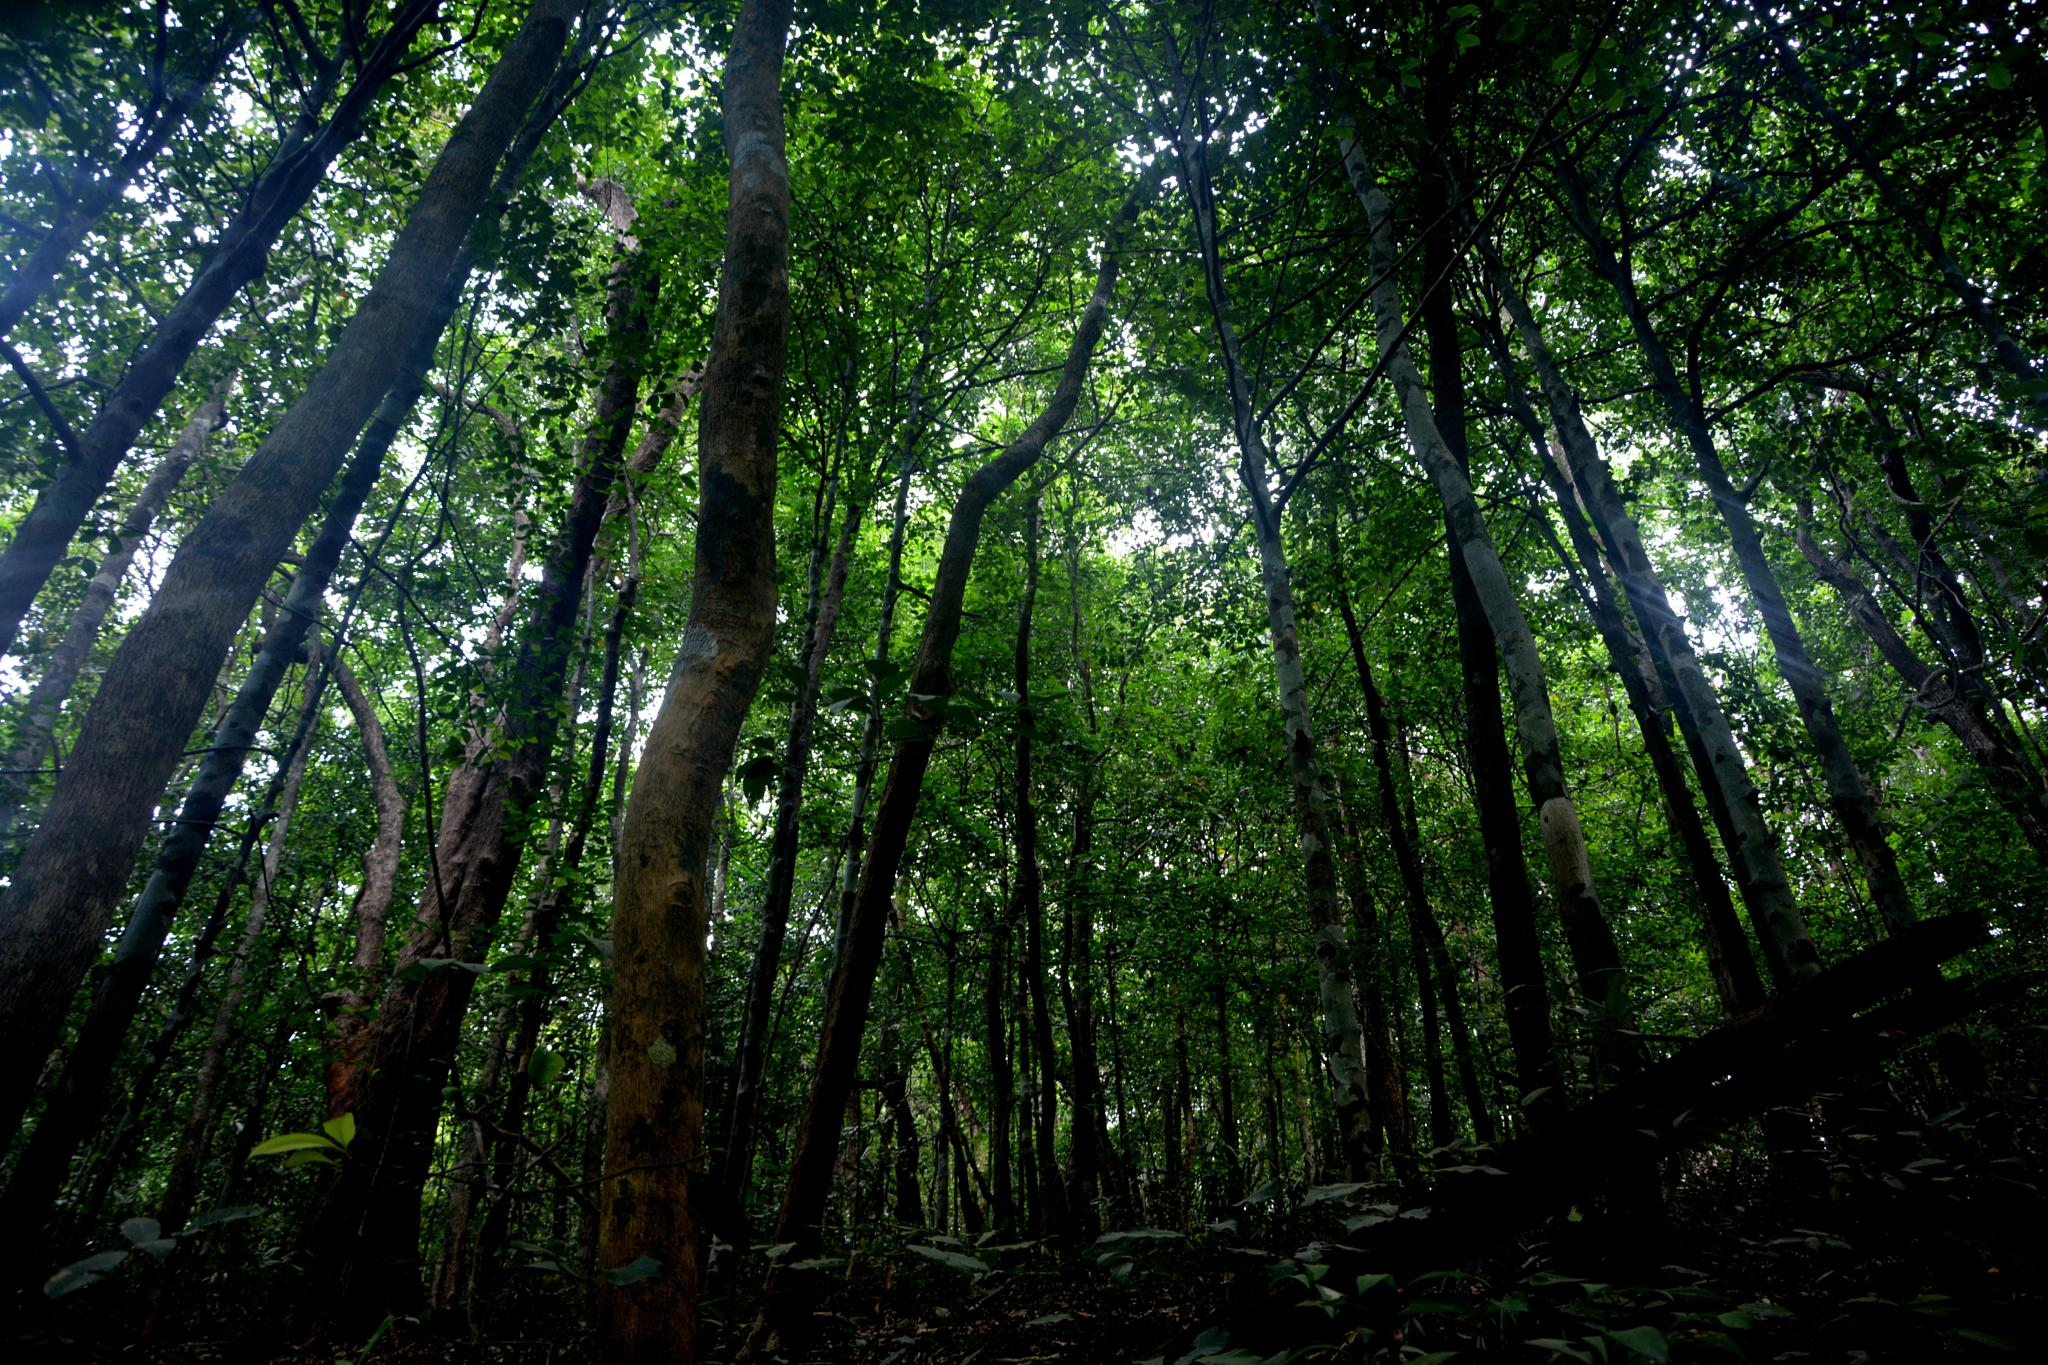 Forrest  by Nagendra Bhat